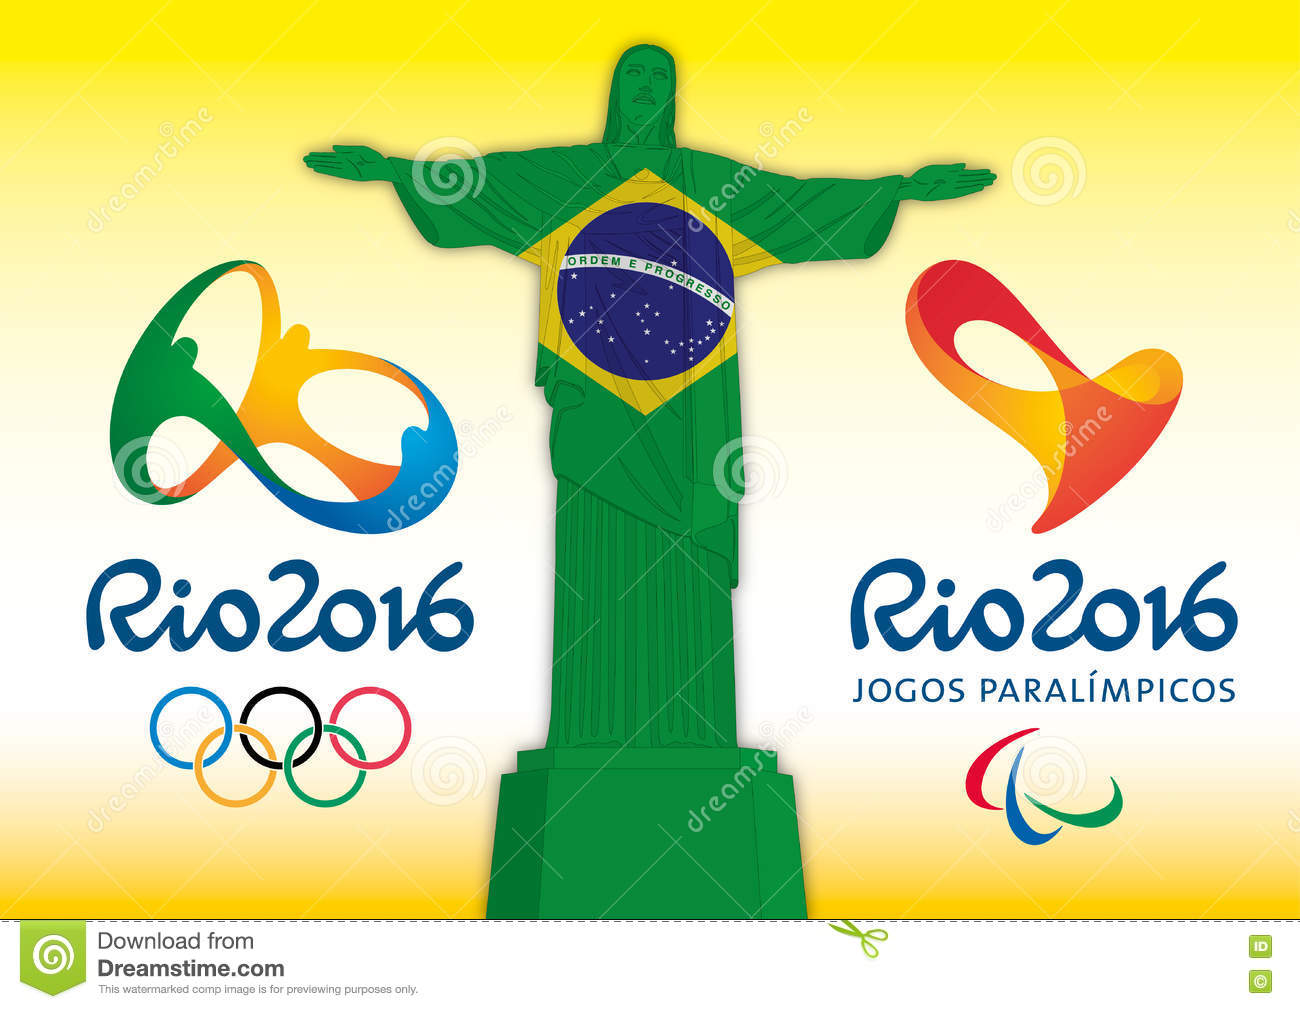 Rio de janeiro brazil year 2016 olympic games and rio de janeiro brazil year 2016 olympic games and paralympics games 2016 christ redeemer symbol and logos biocorpaavc Images